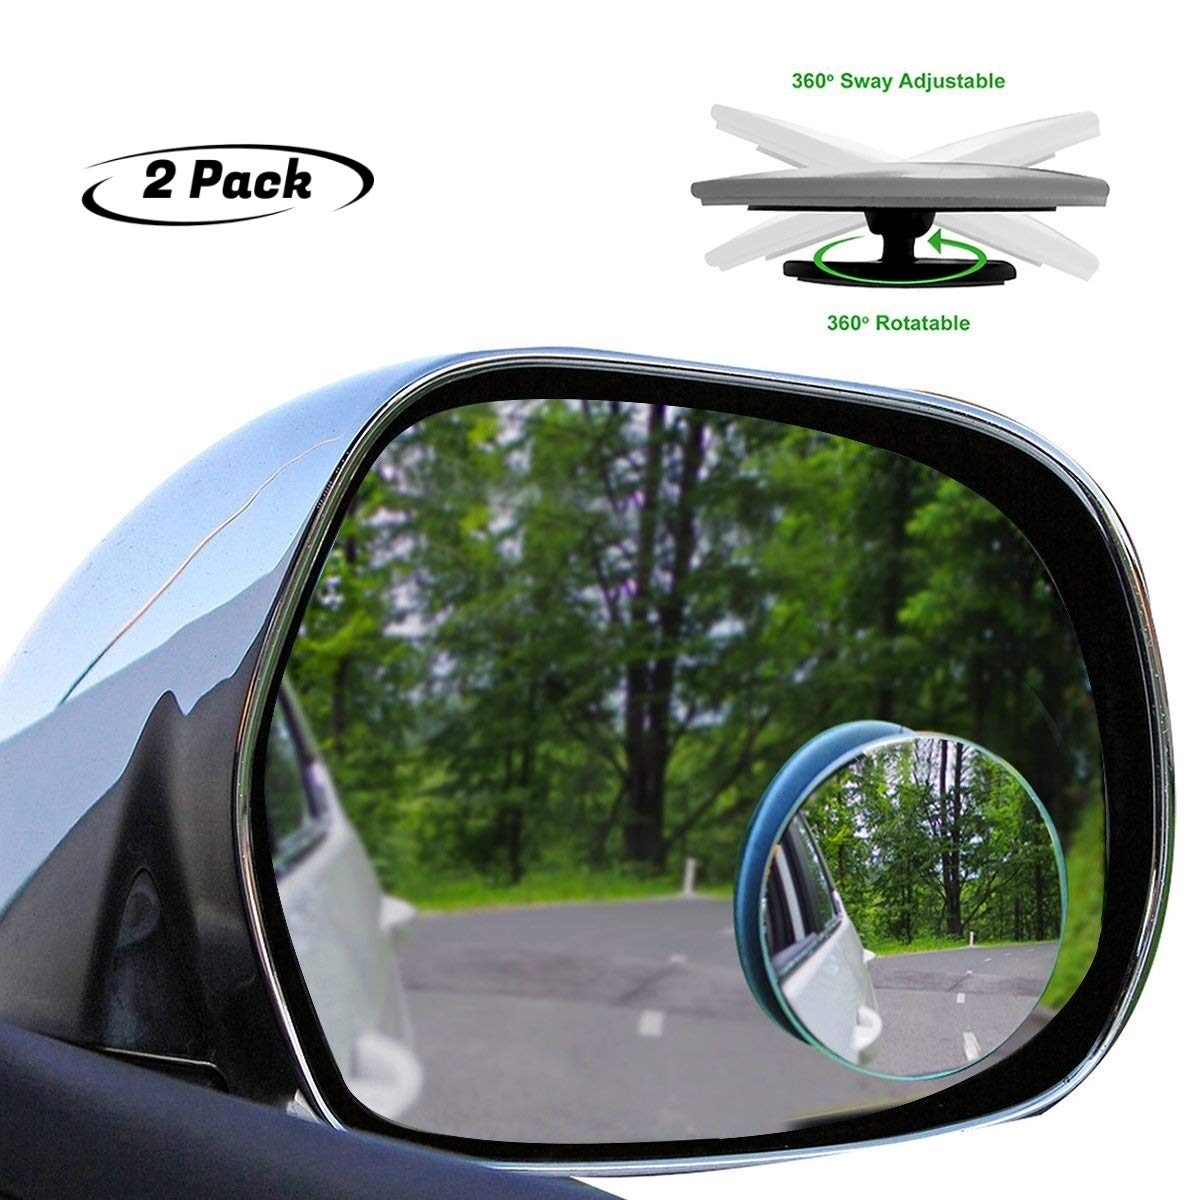 Beech Lane Blindspot Mirror Two-Pack For 2009-18 Dodge Ram Trucks Authentic 3M Adhesive Custom Fit For Ram Non Towing Mirrors,Chrome Glass Prevents Glare and Blemishes